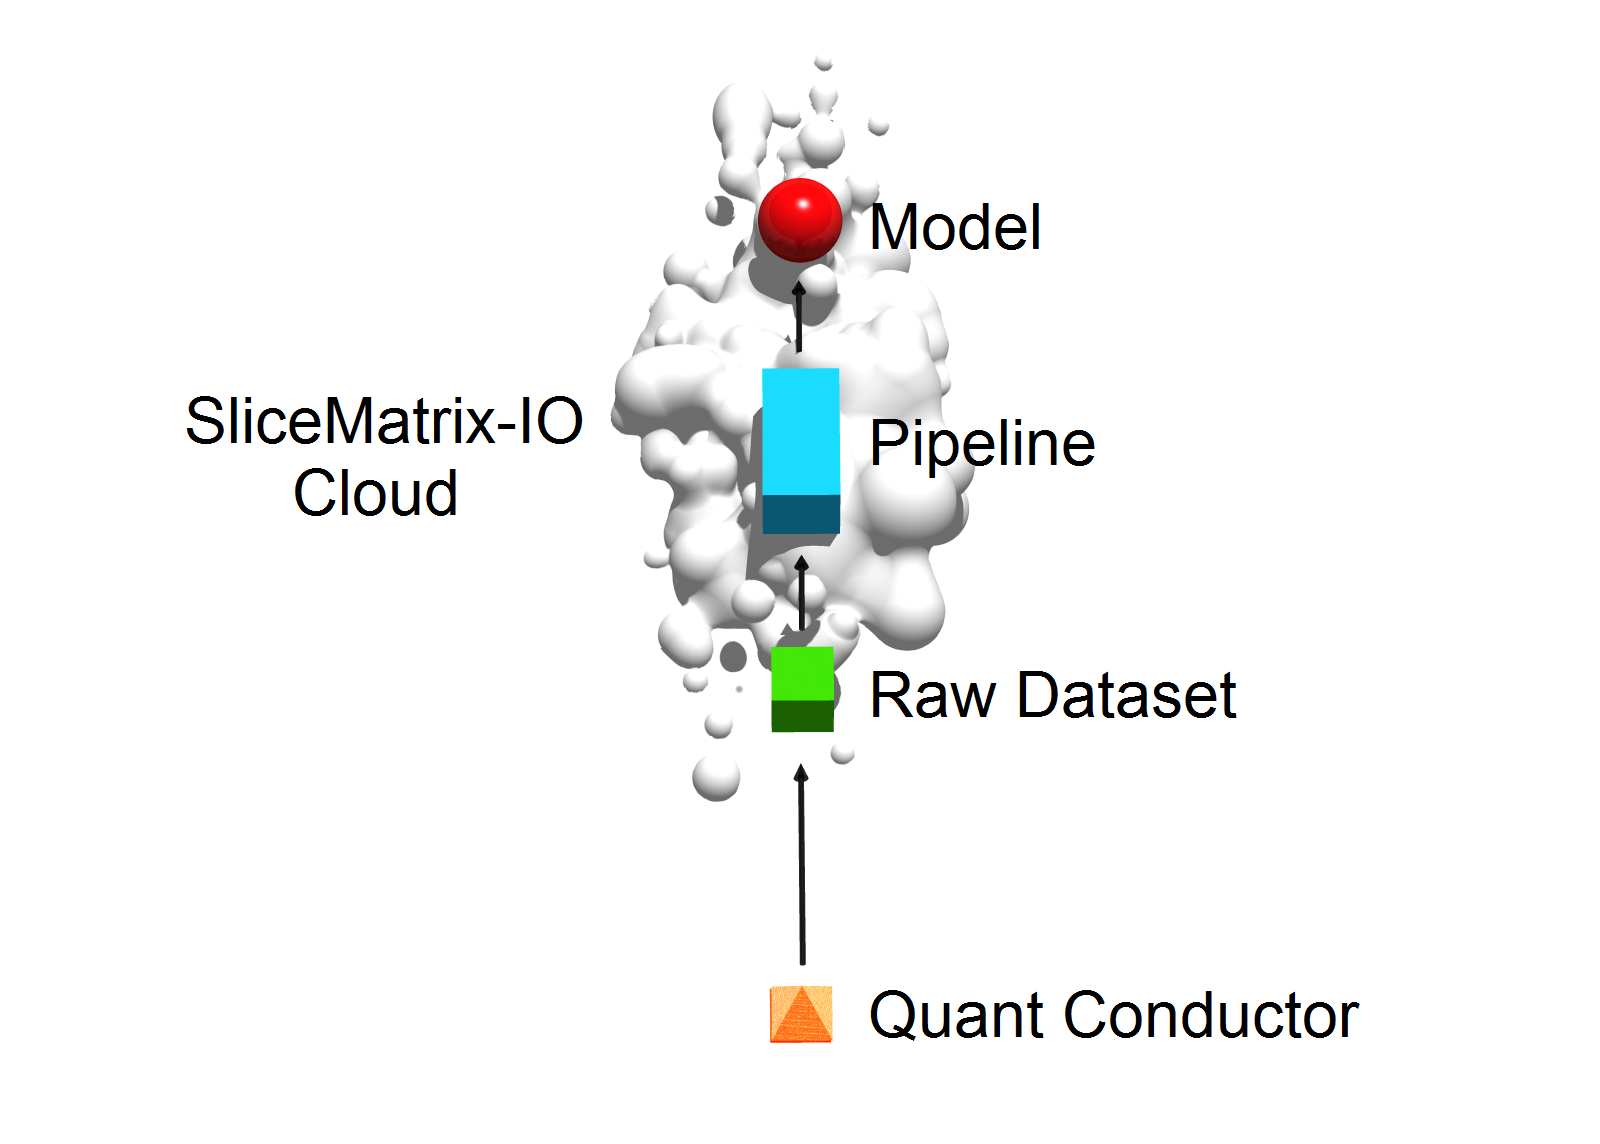 Diagram 1  Note that in the diagram 1 the end-user is referred to as a 'Quant Conductor' because IO enables the end-user to orchestrate the design, development and execution of machine intelligent systems with speed and ease that the end-user is able to do the task of a team of data scientist.